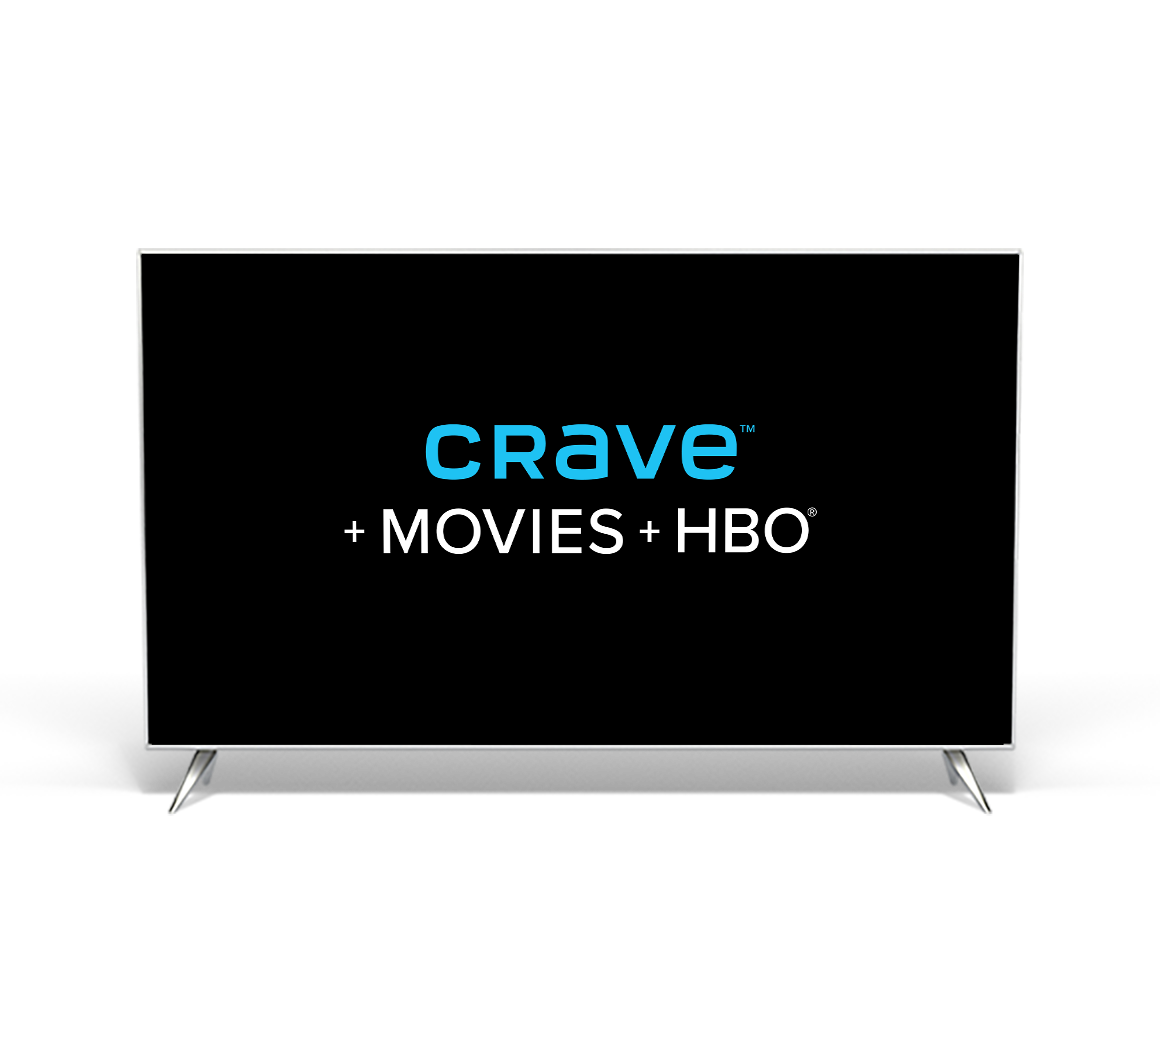 A TV featuring the Crave logo